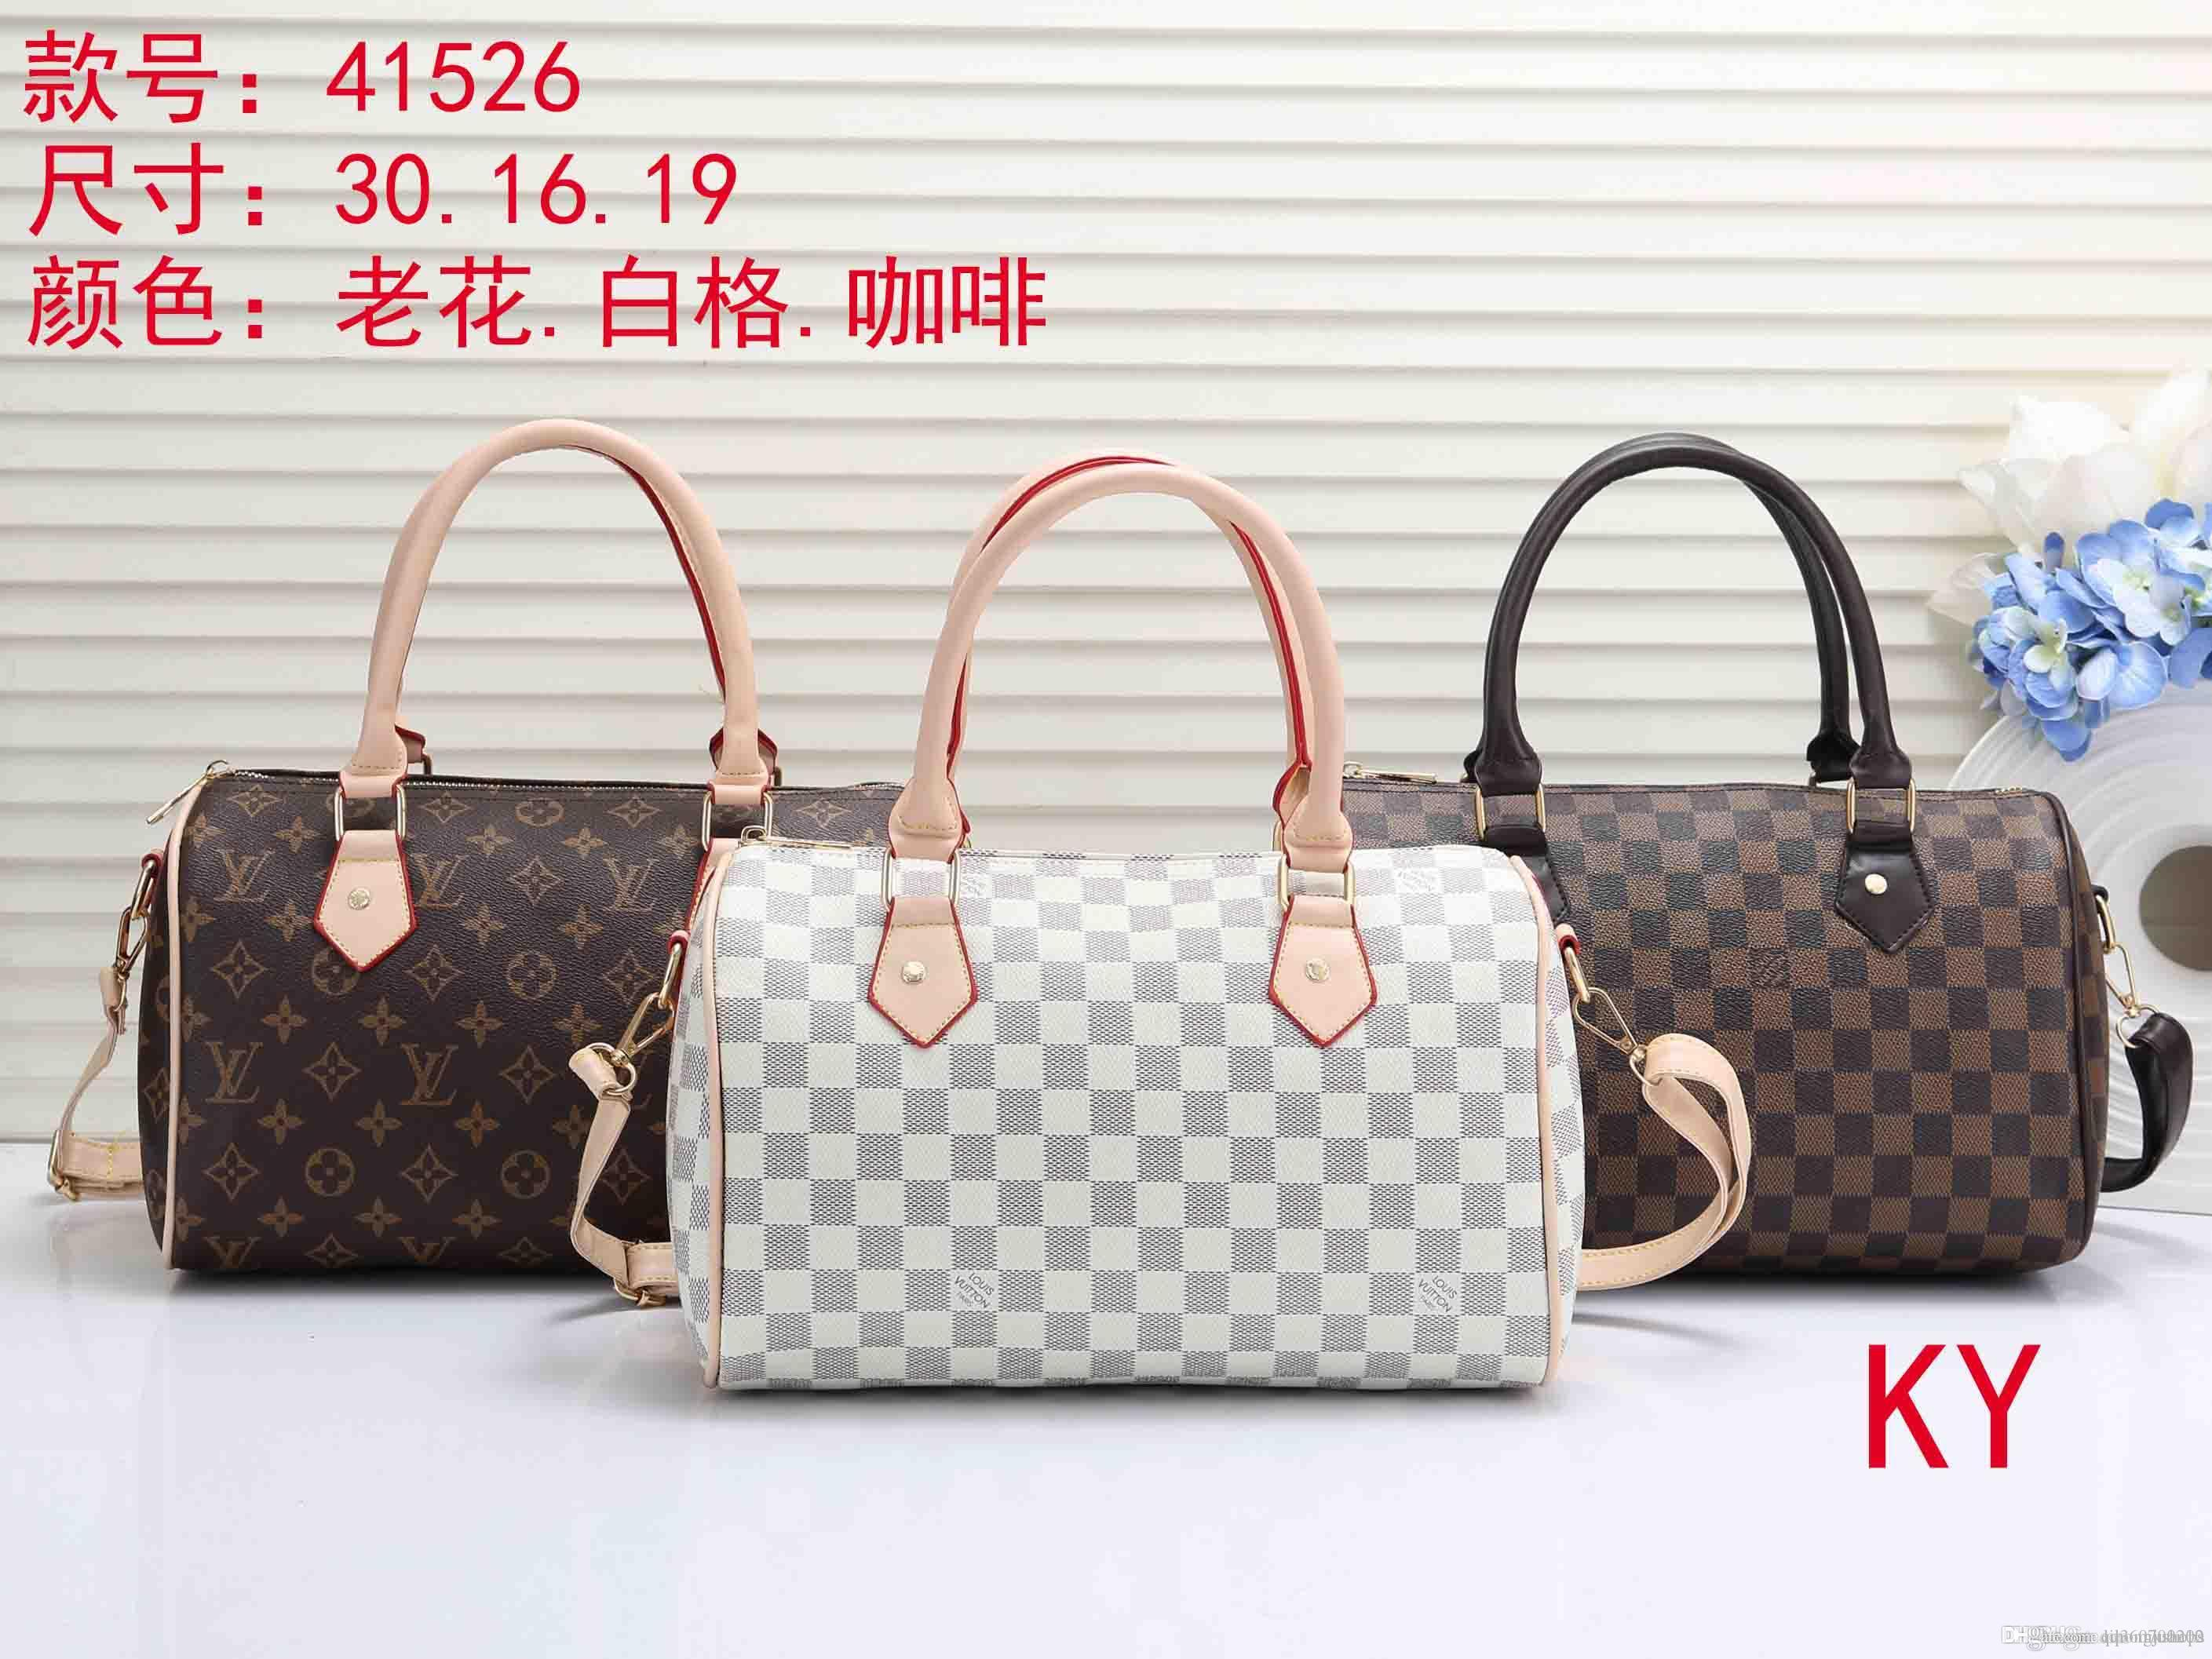 09a2b2b039c KY 41526 NEW Styles Fashion Bags Ladies Handbags Bags Women Tote Bag  Backpack Single Shoulder Bag Online with $26.35/Piece on Qq360700210's  Store | DHgate. ...